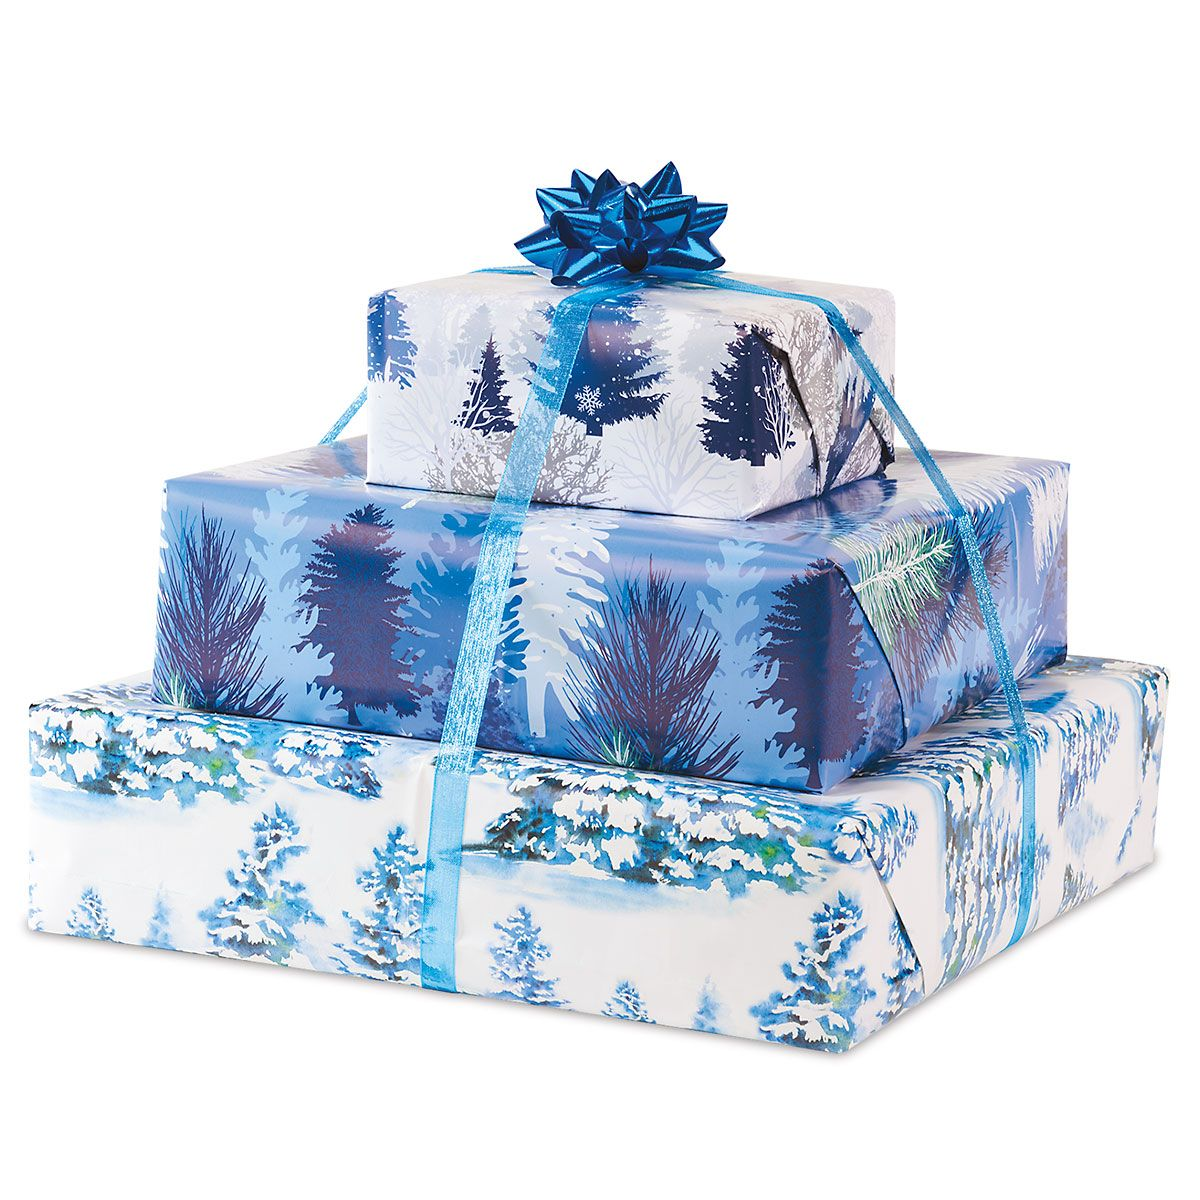 Snowy Trees Flat Gift Wrap Sheets - Buy 1 Get 1 Free